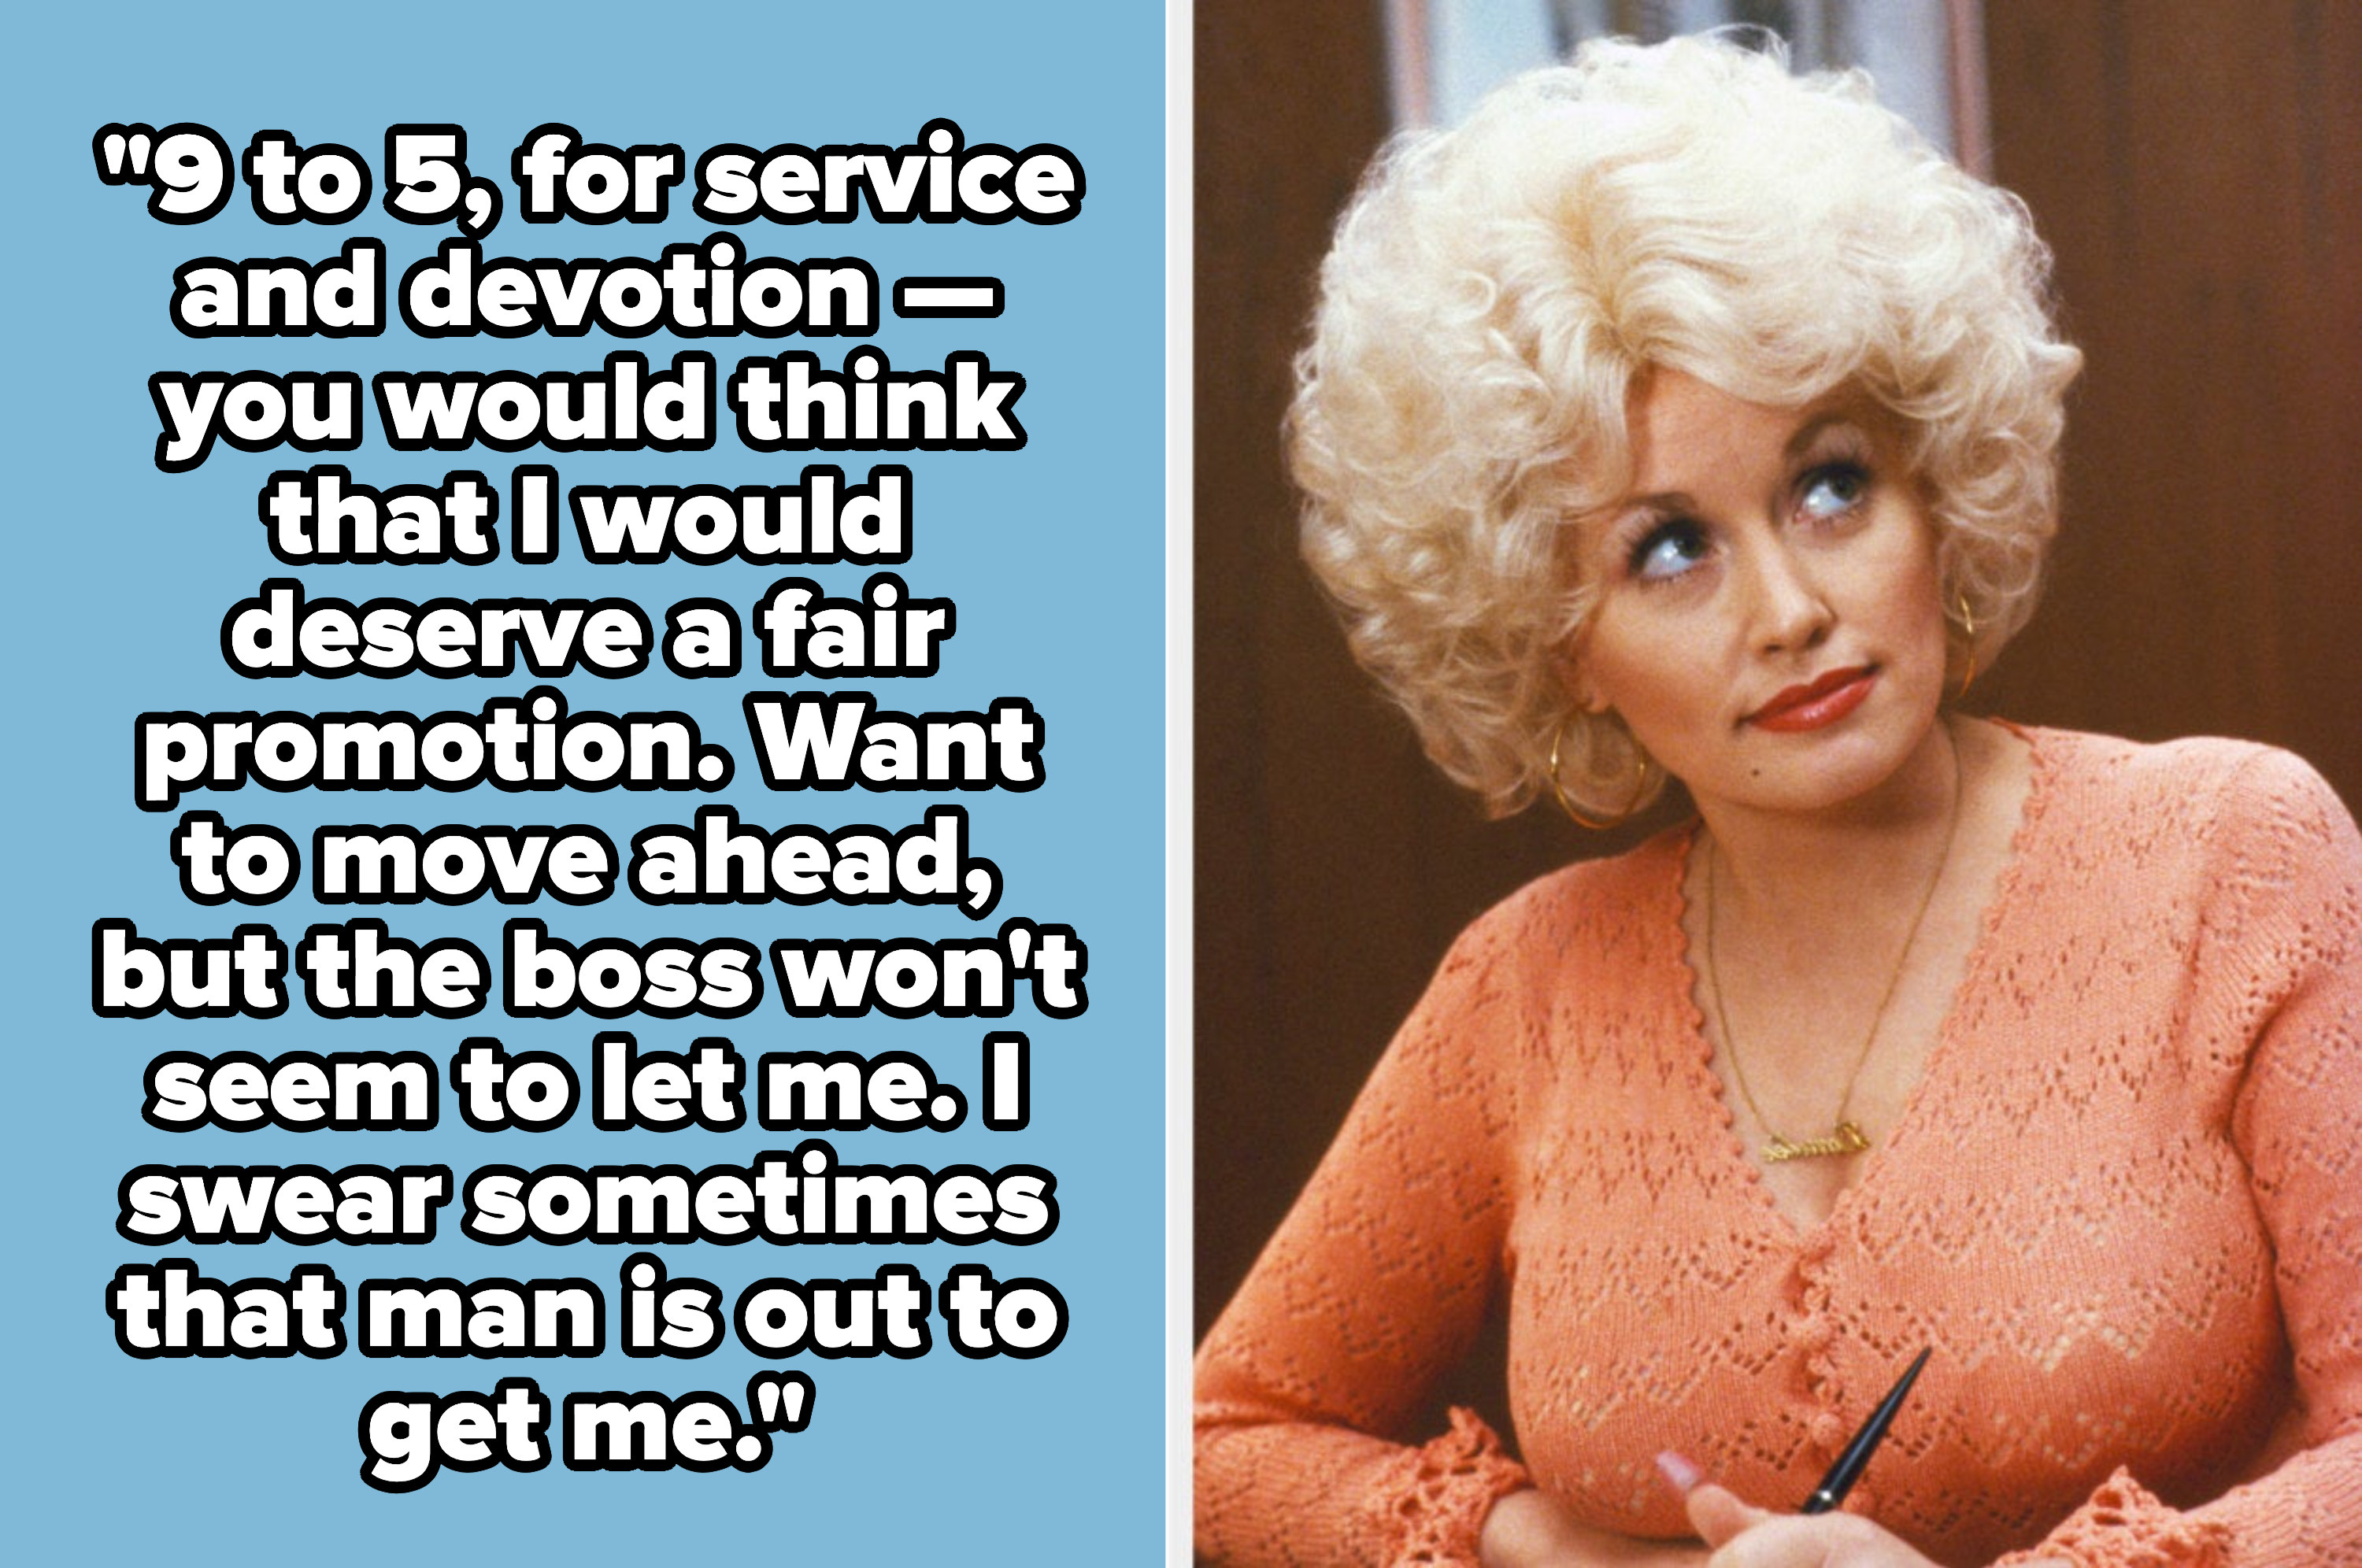 """Dolly Parton lyrics: """"9 to 5, for service and devotion — you would think that I would deserve a fair promotion. Want to move ahead, but the boss won't seem to let me. I swear sometimes that man is out to get me"""""""